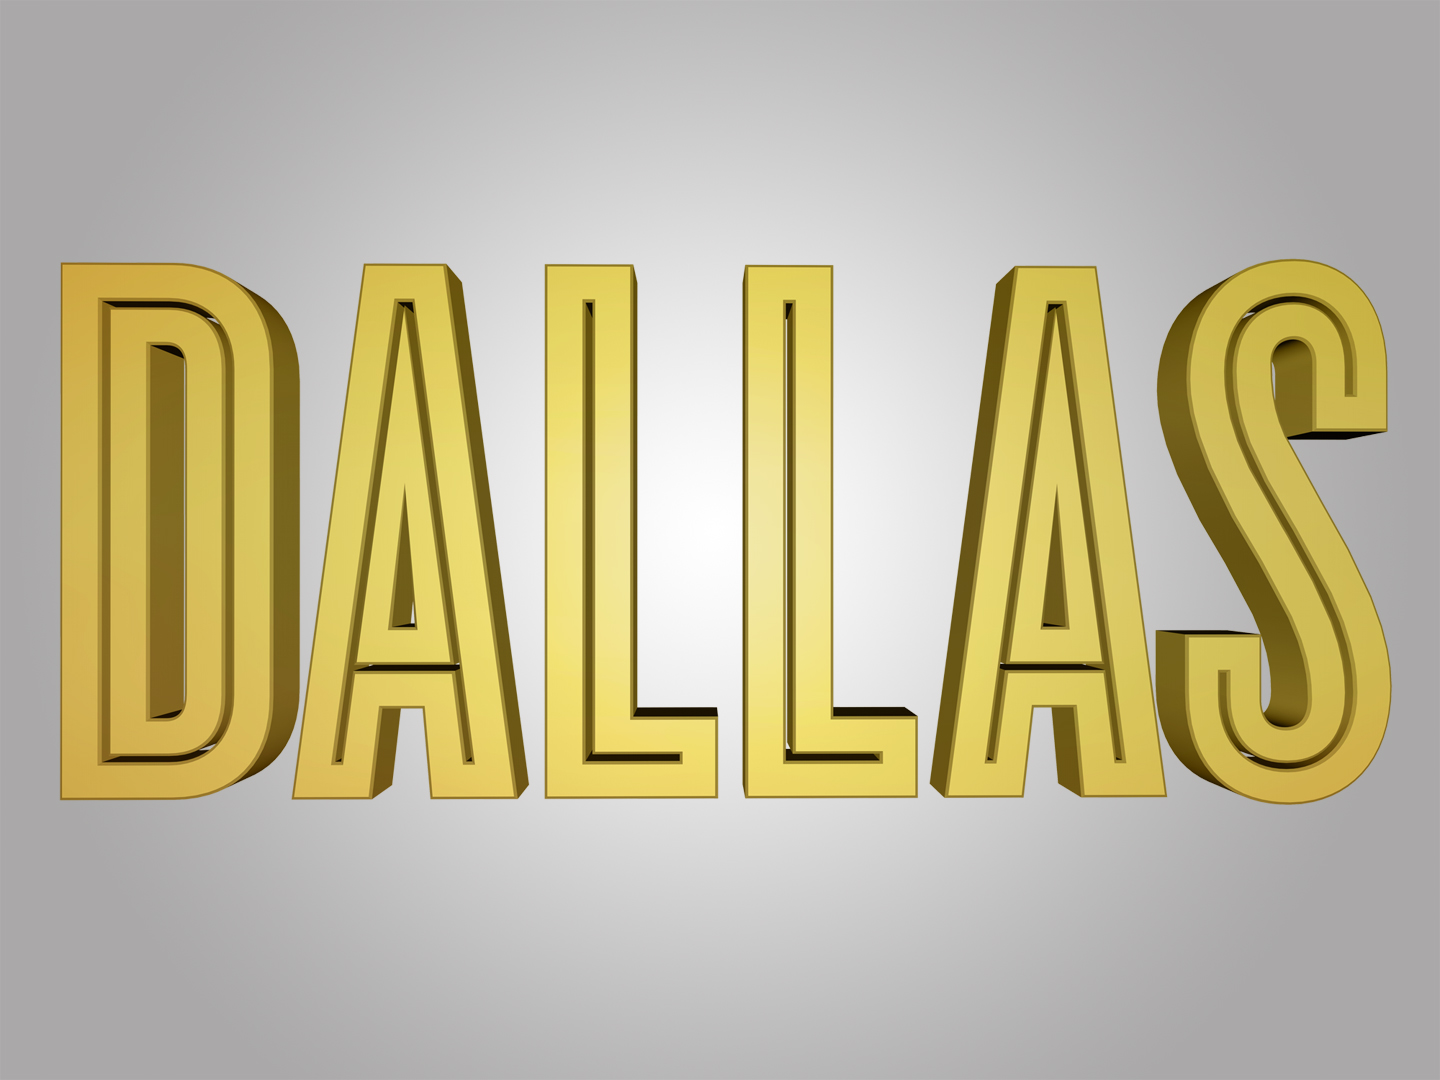 Dallas Tv Show Dallas (2012)